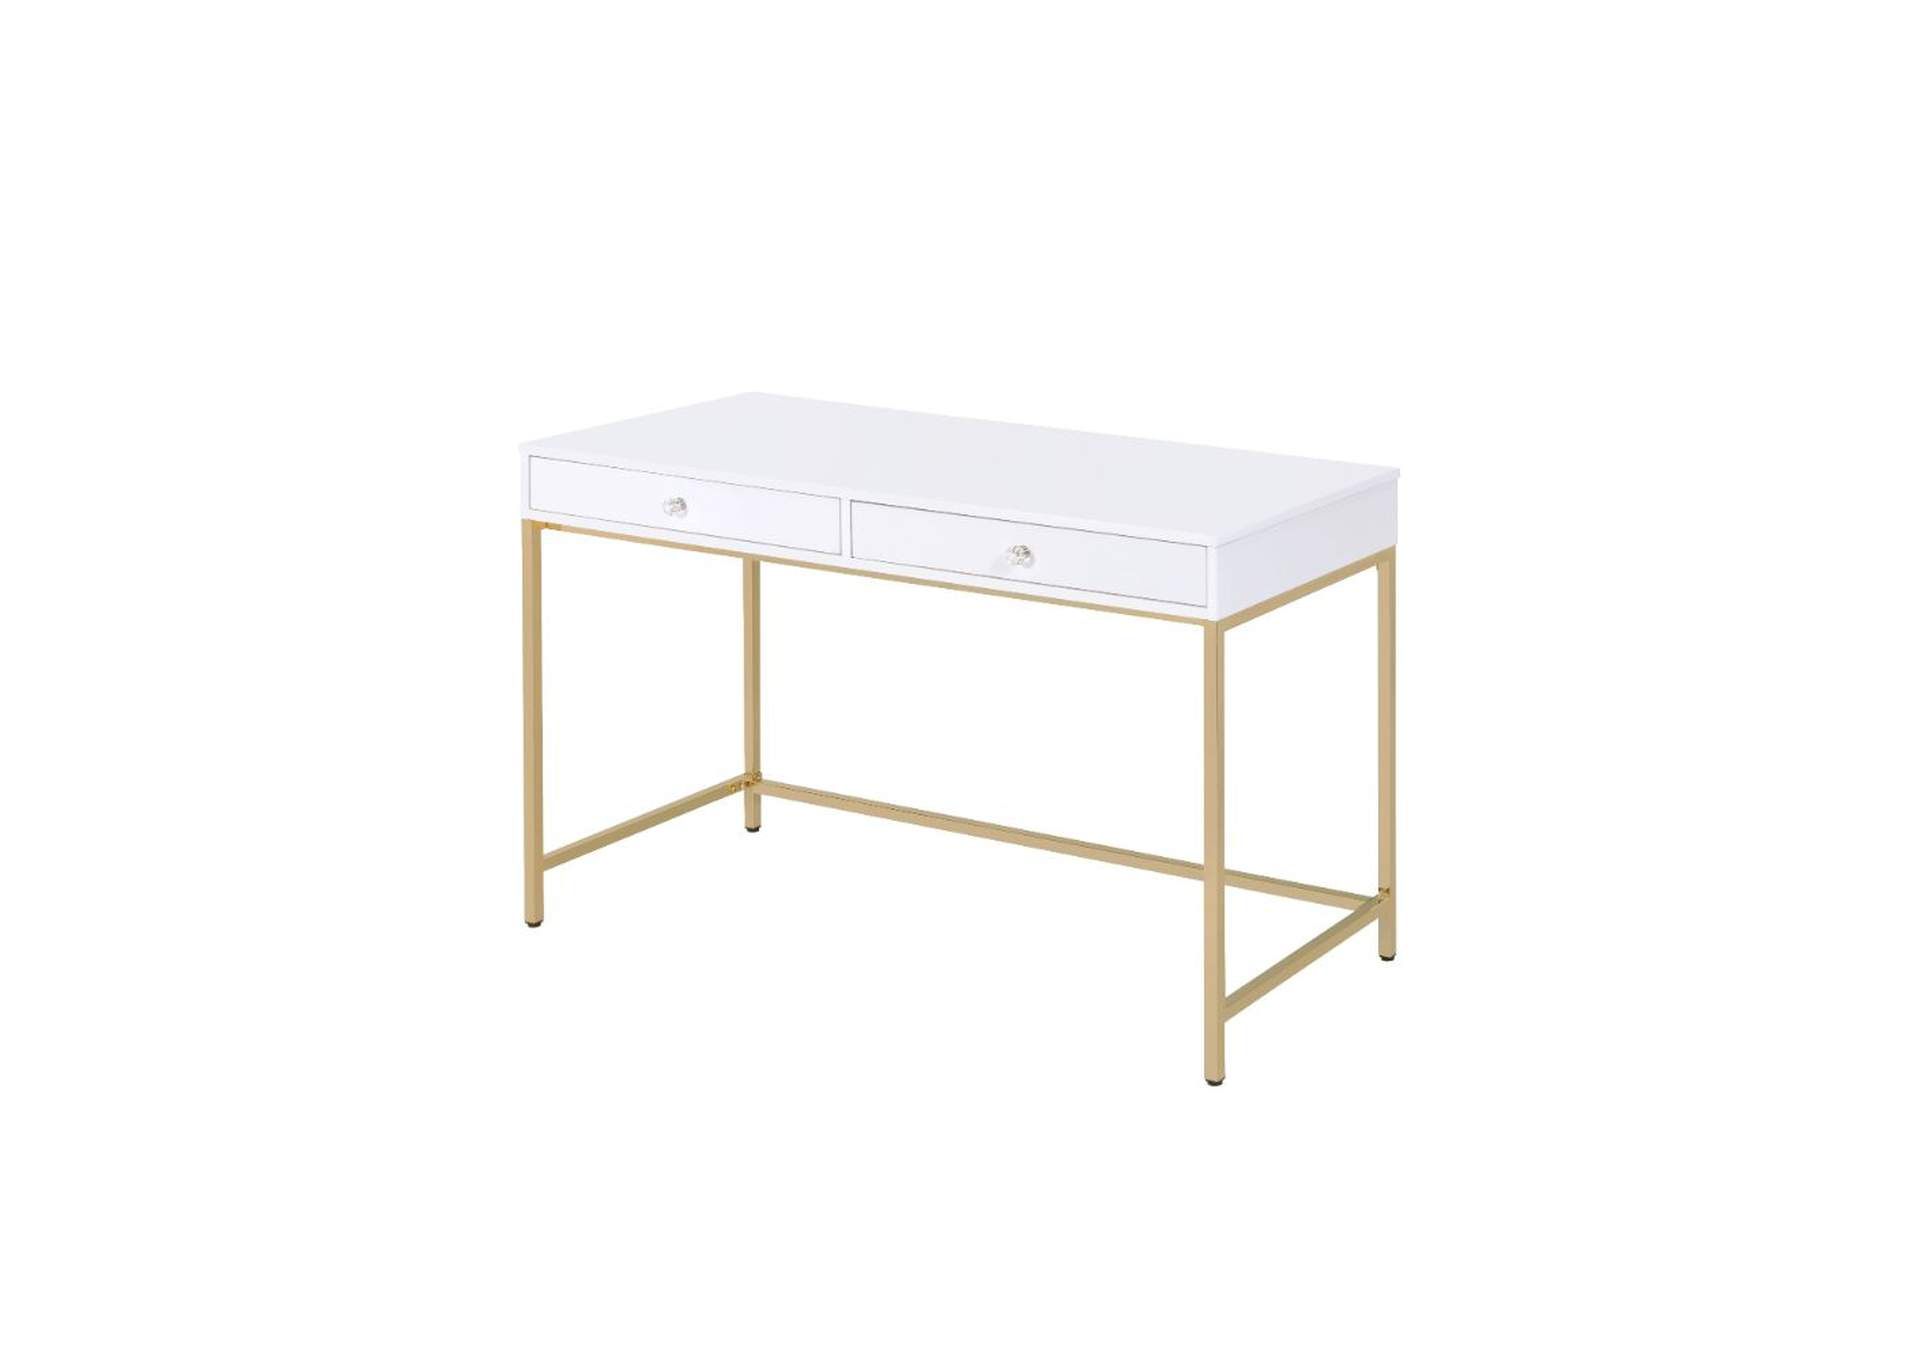 Ottey White High Gloss & Gold Desk,Acme